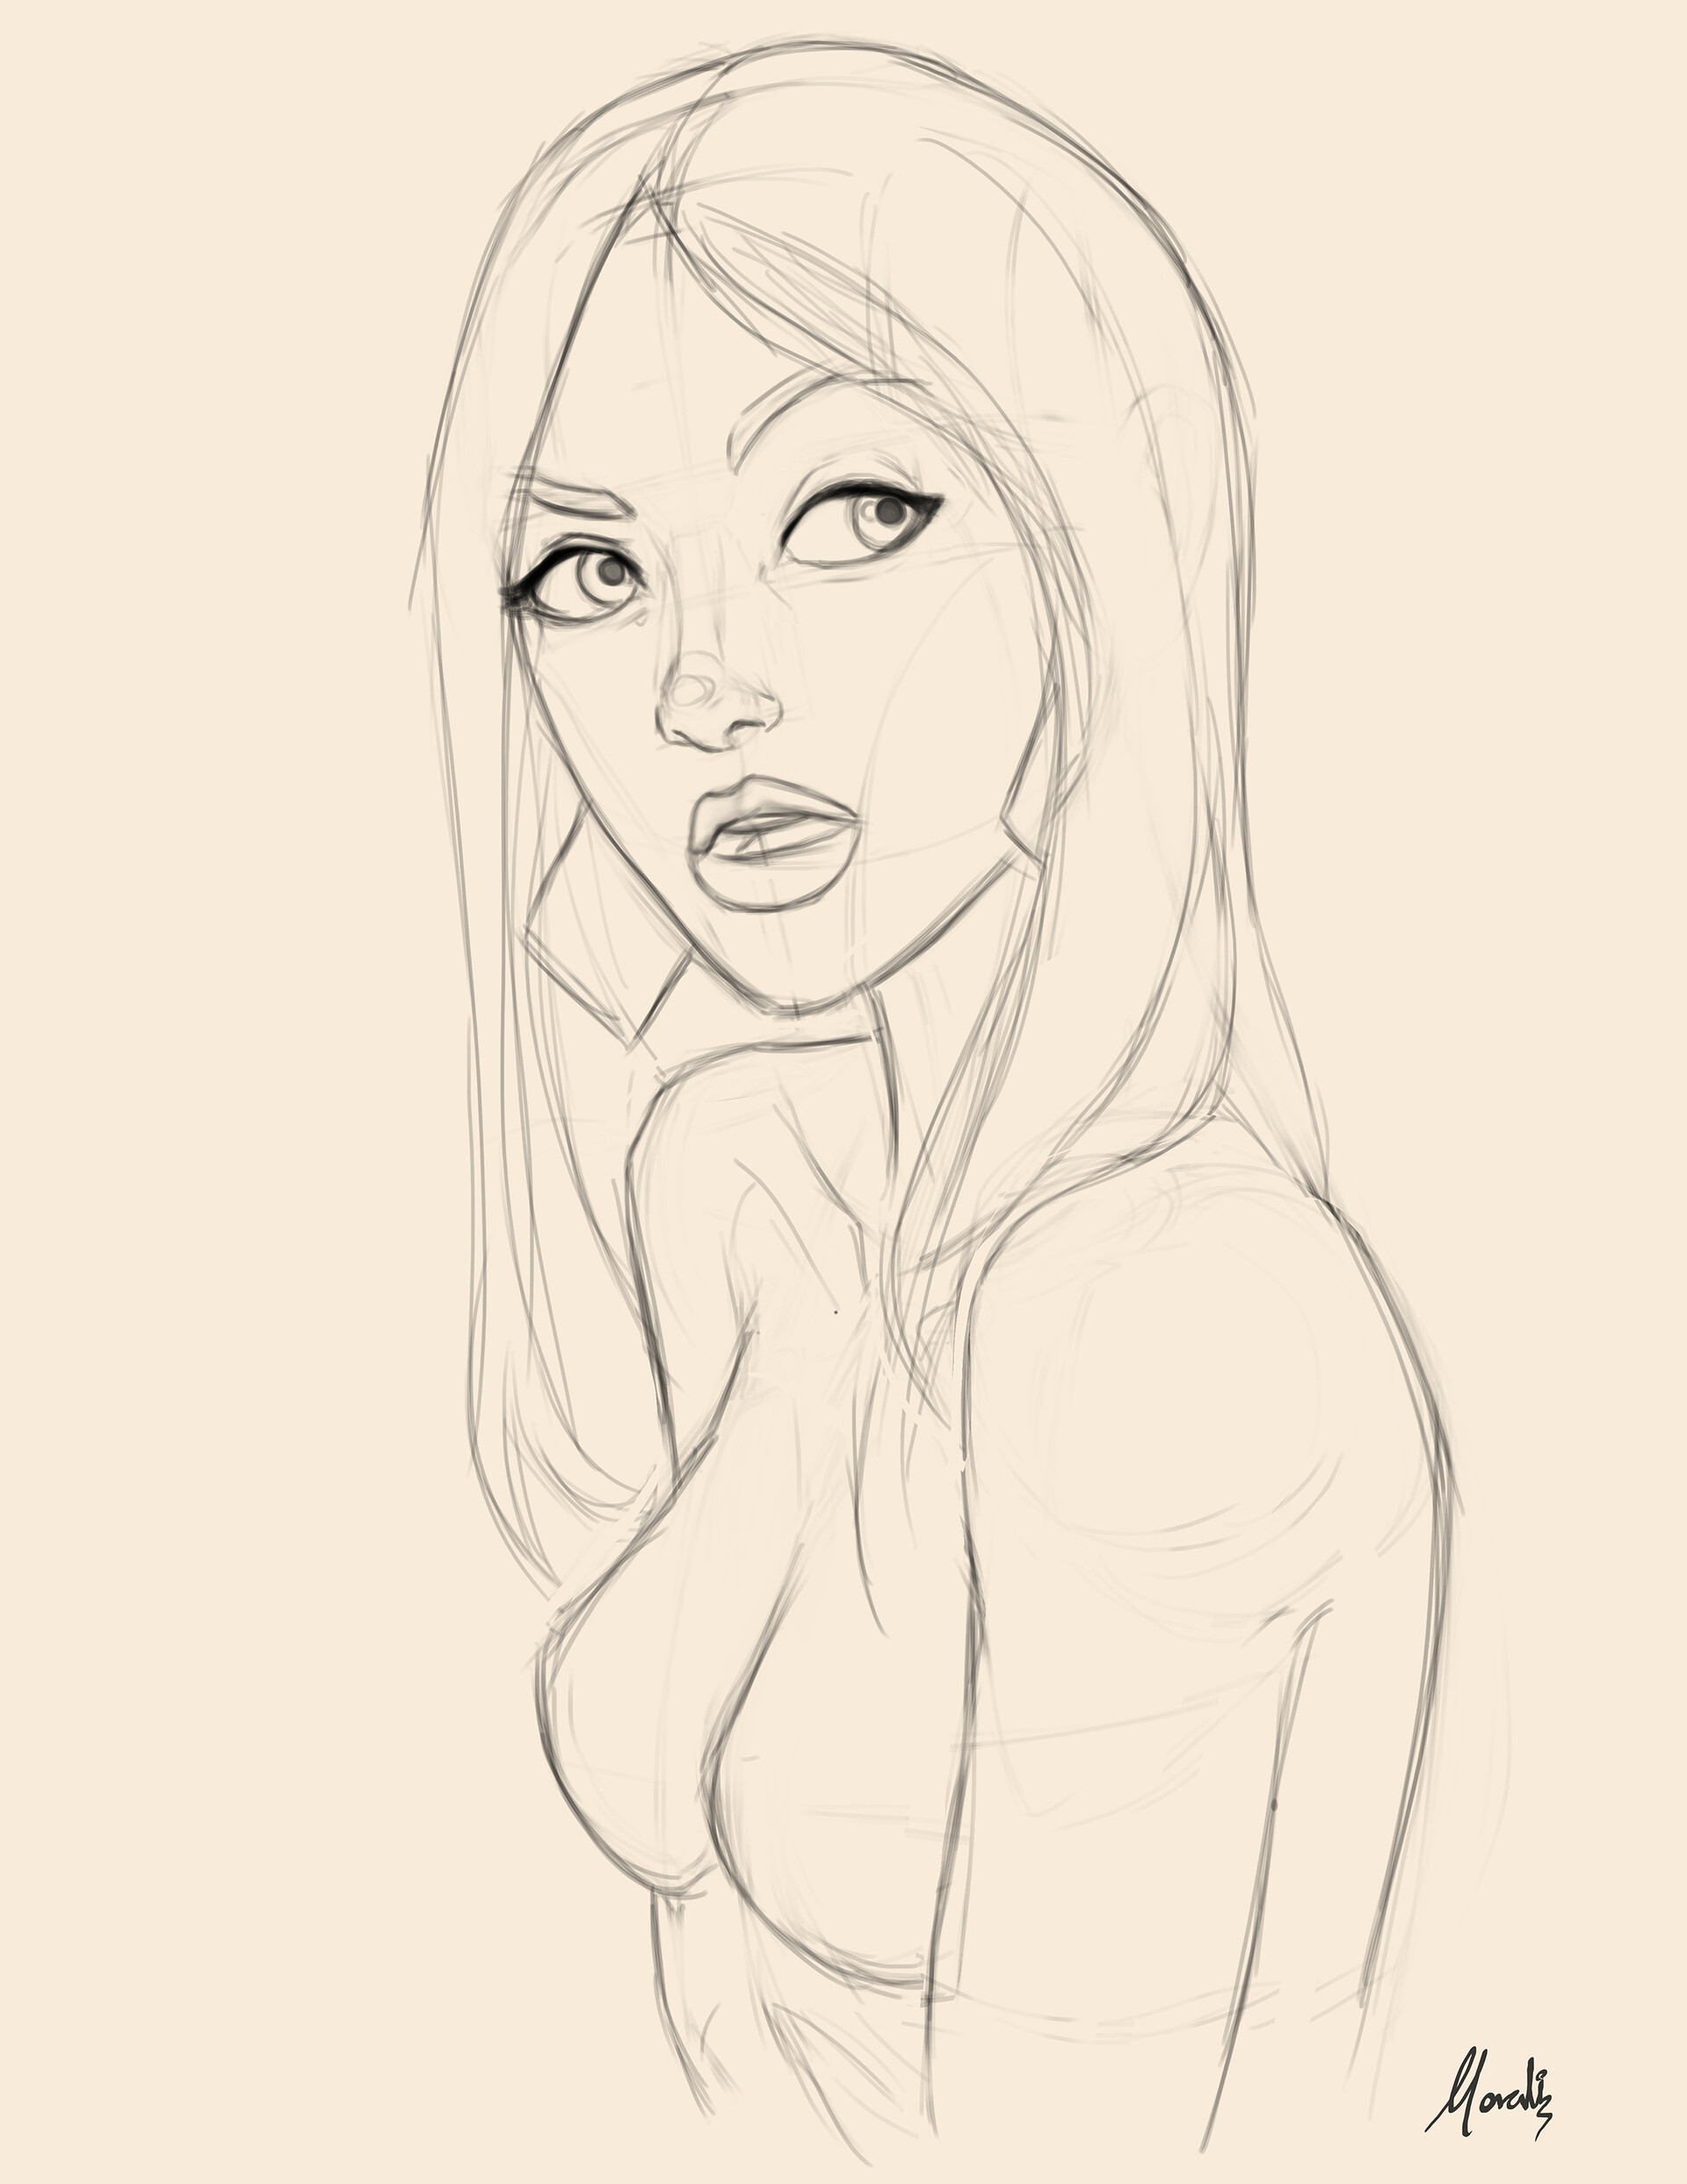 The initial sketch, then I decided to go closer and crop her a bit.